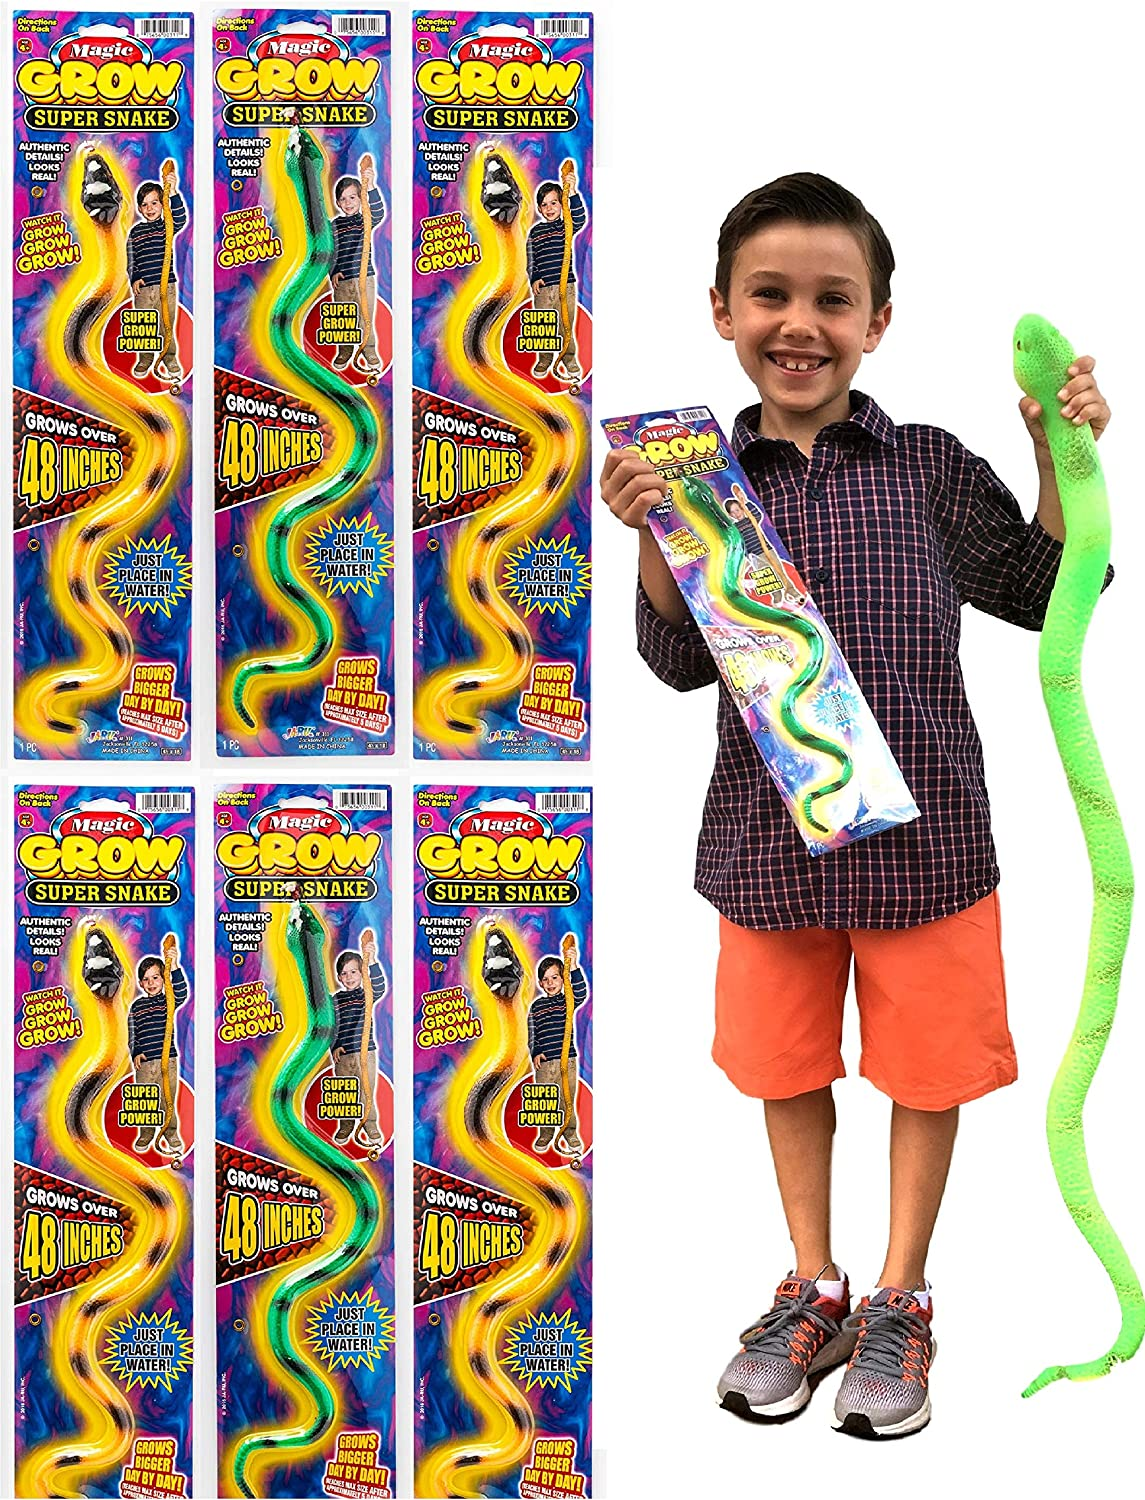 Fun Grow Snake Reptile Toy Creature Grows up to 600 in Water Age 3 for sale online